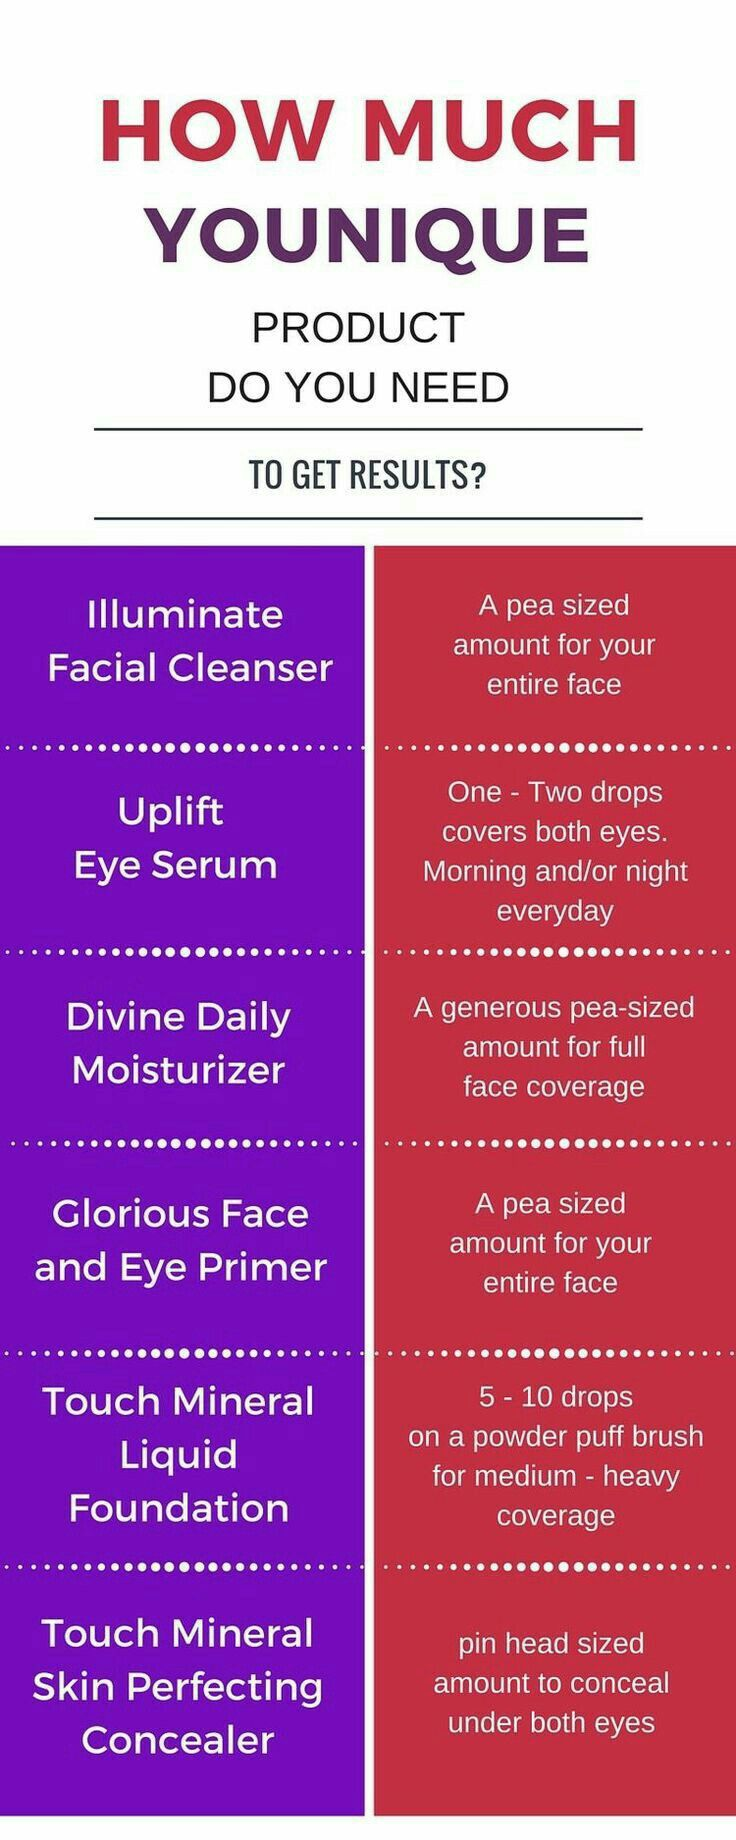 Need to know how much product to use? Here you go!